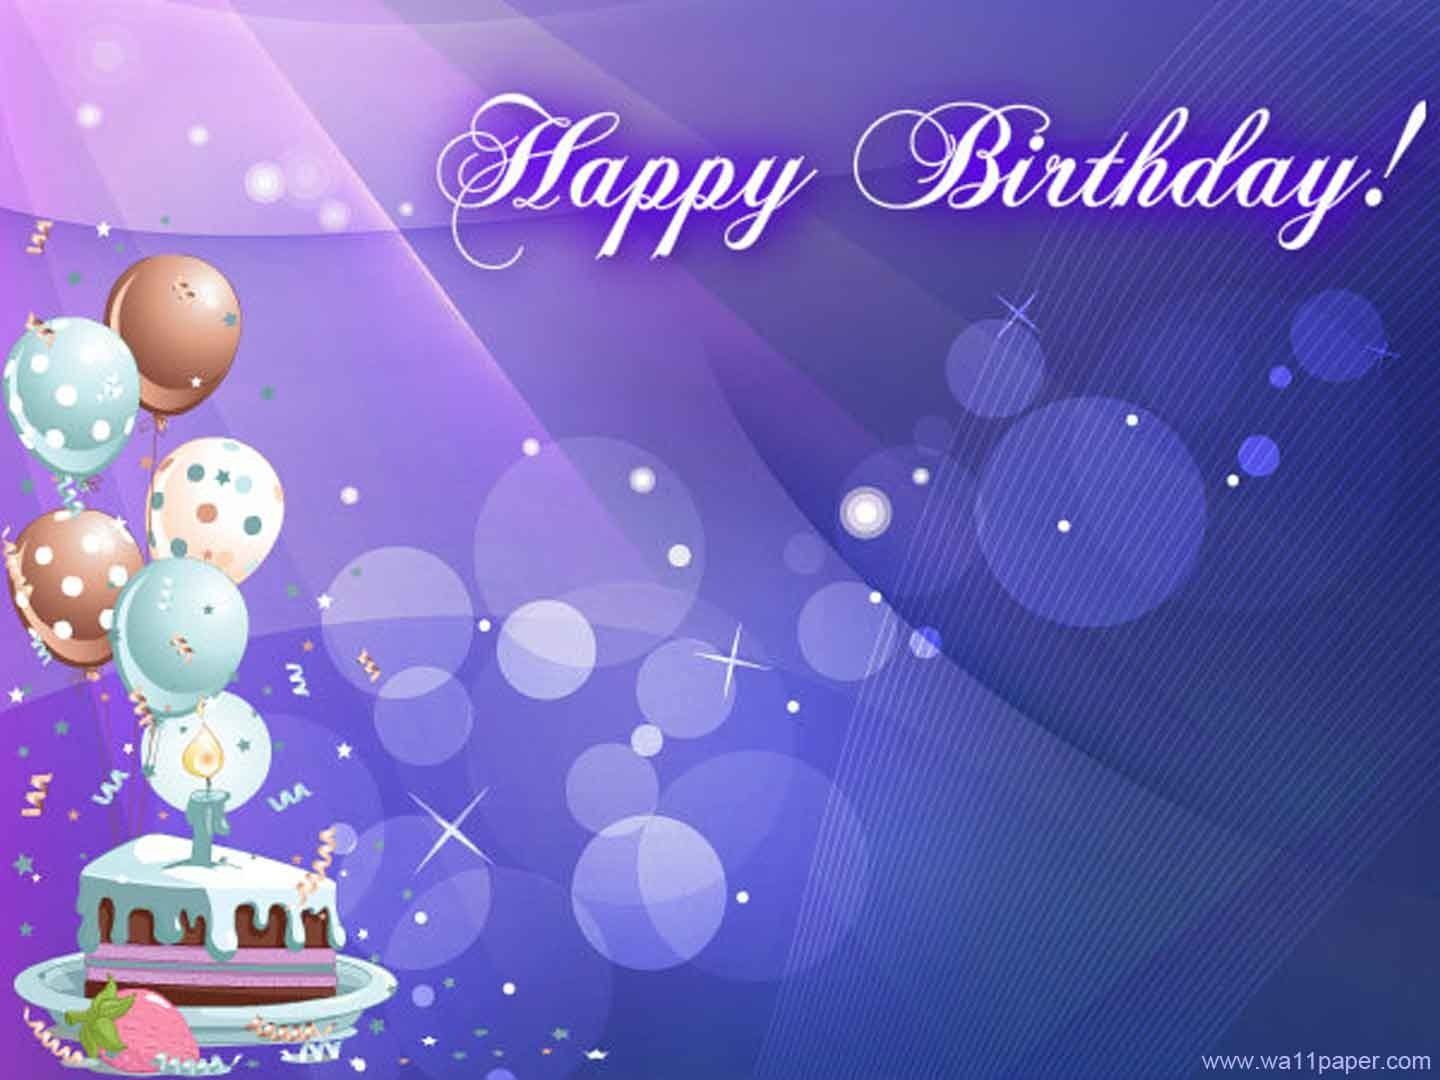 Birthday Wallpaper 4 1440 X 1080 Stmed Net In 2020 Happy Birthday Blue Happy Birthday Wishes Images Happy Birthday Wishes Photos